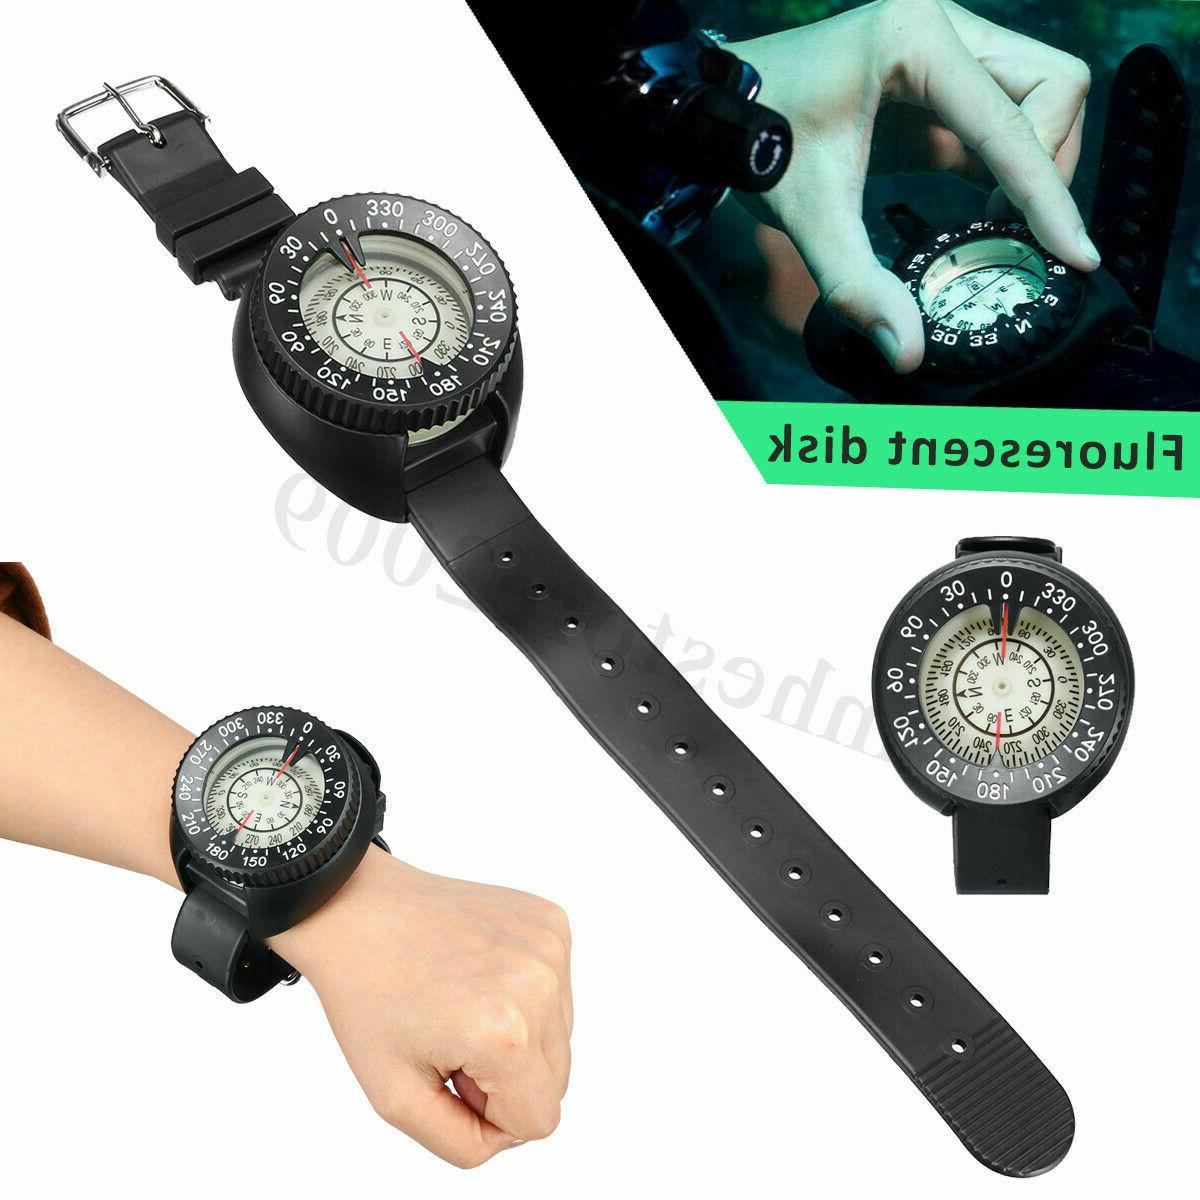 50m 164ft compass watch led wrist watches